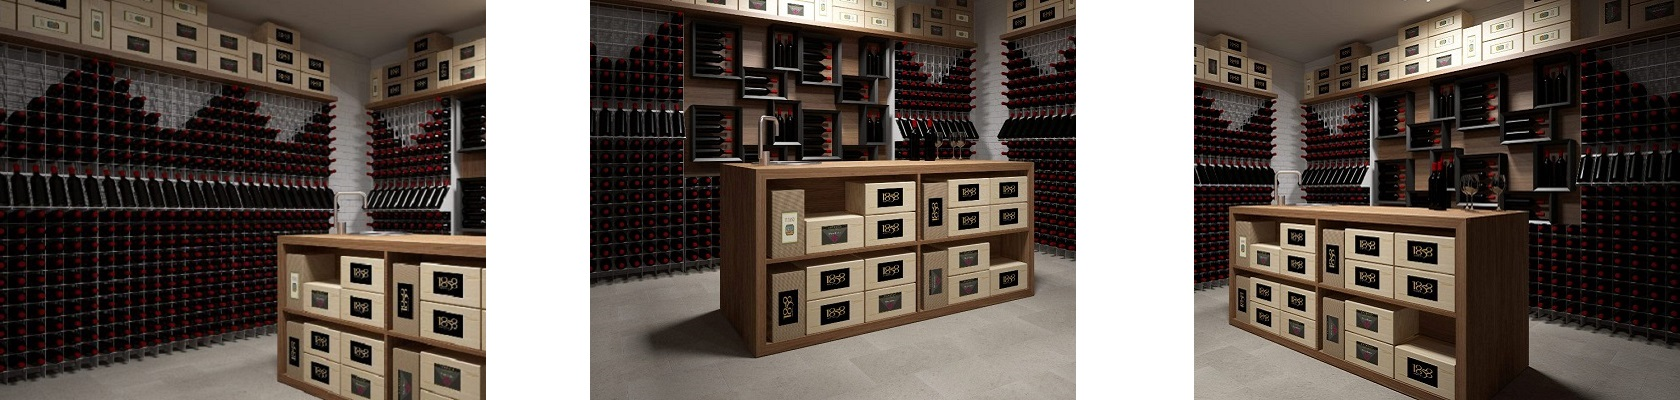 Esigo 2 Net wine storage rack